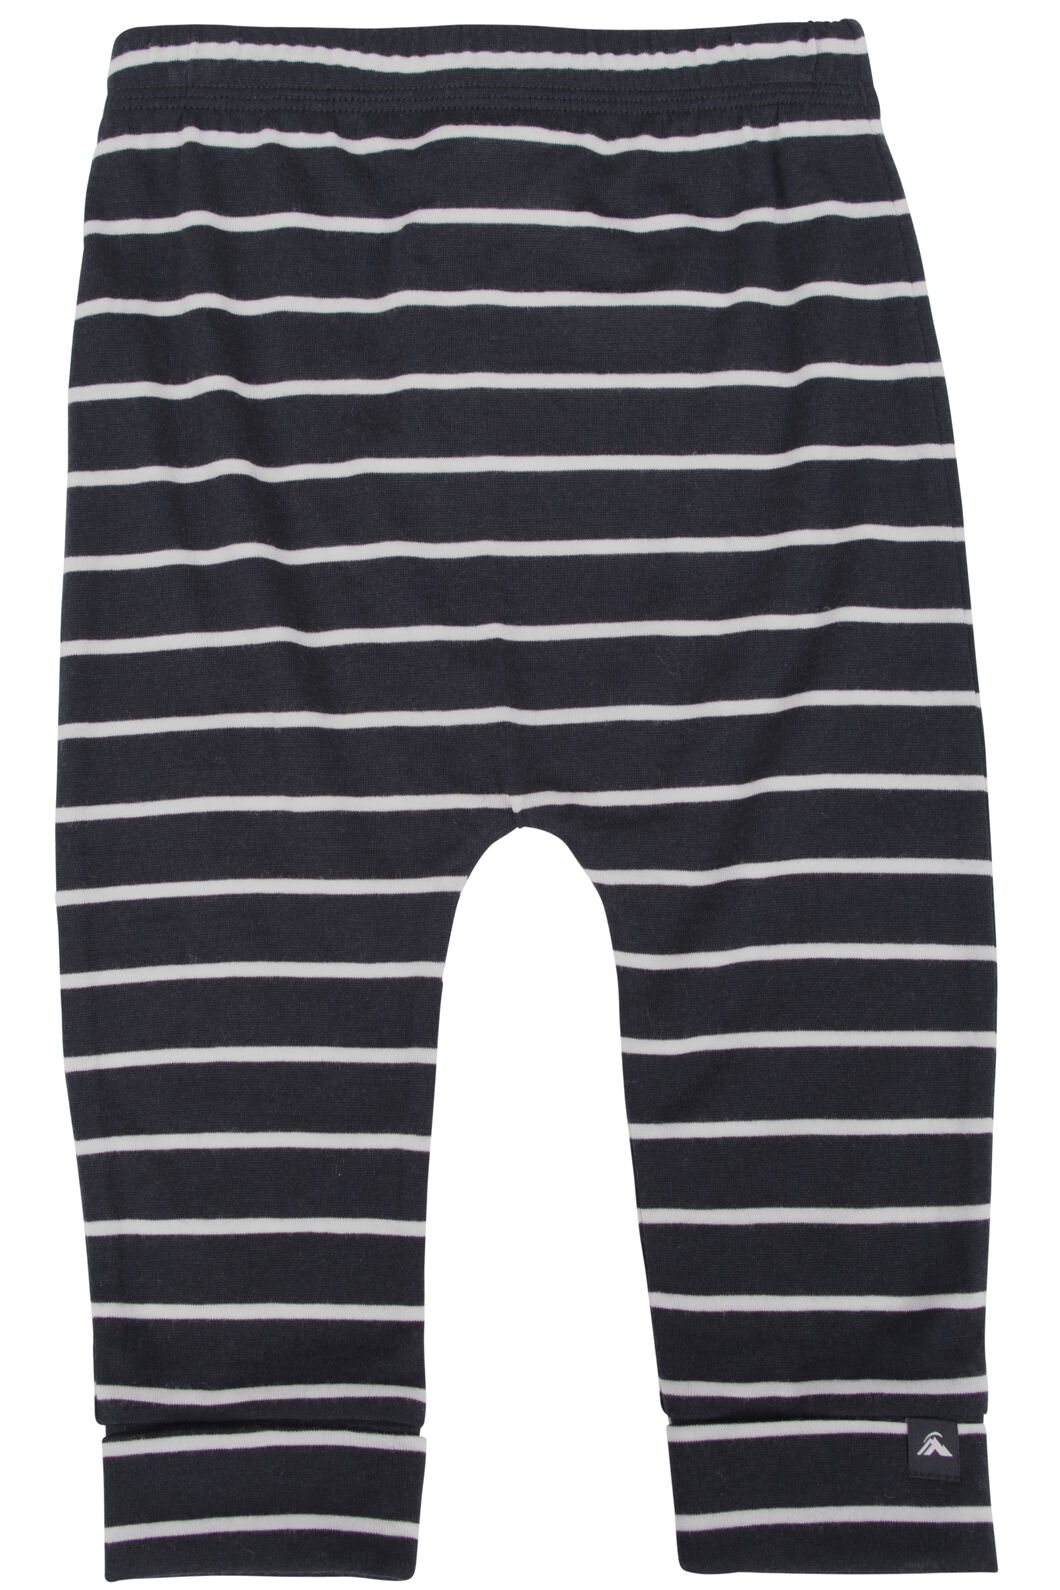 Macpac 150 Merino Long Johns - Baby, Black/White Stripe, hi-res